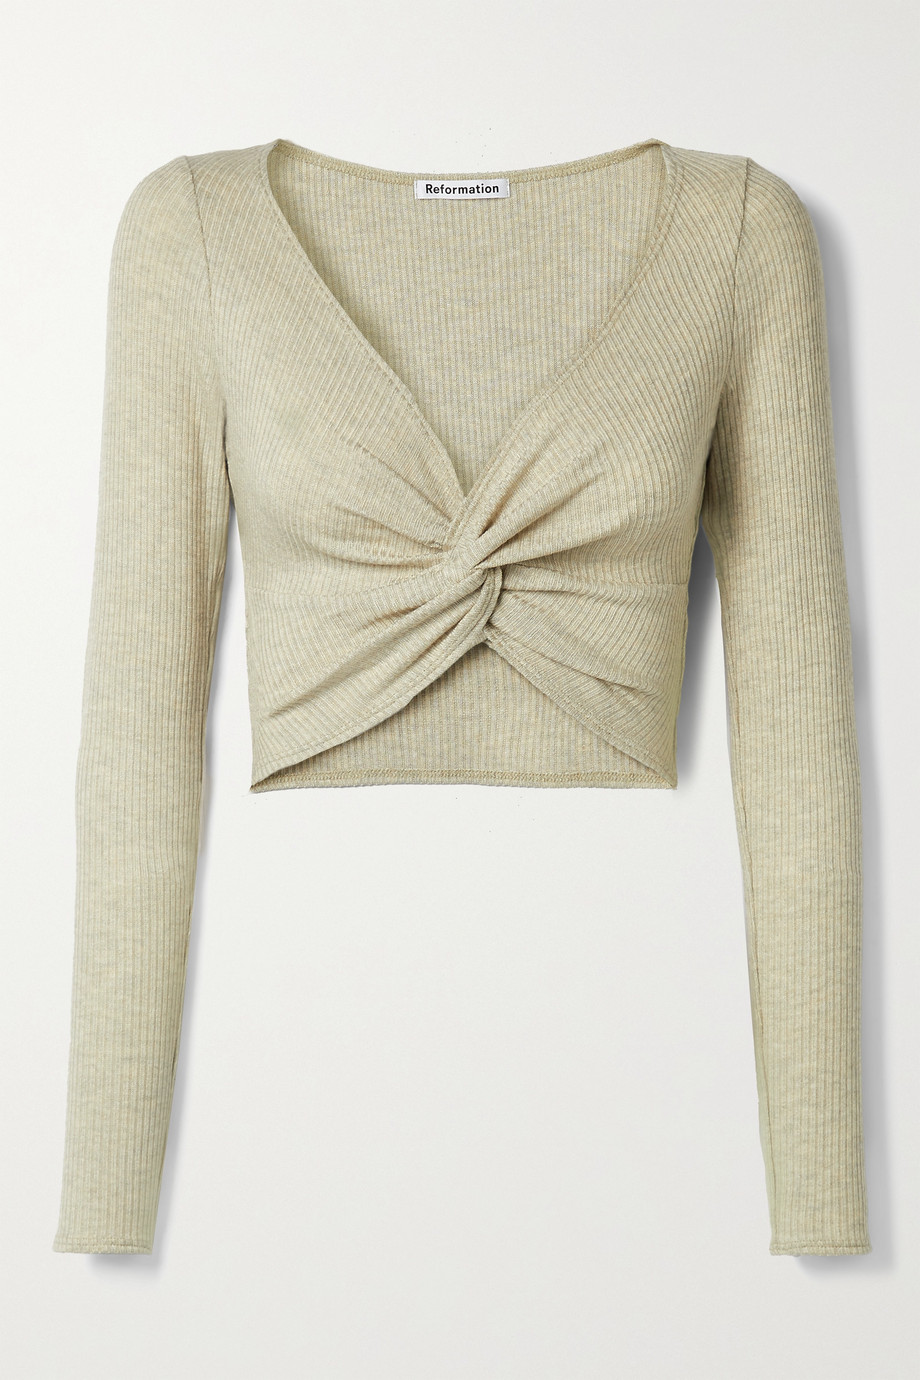 Reformation Loch cropped twist-front ribbed stretch-TENCEL Modal top